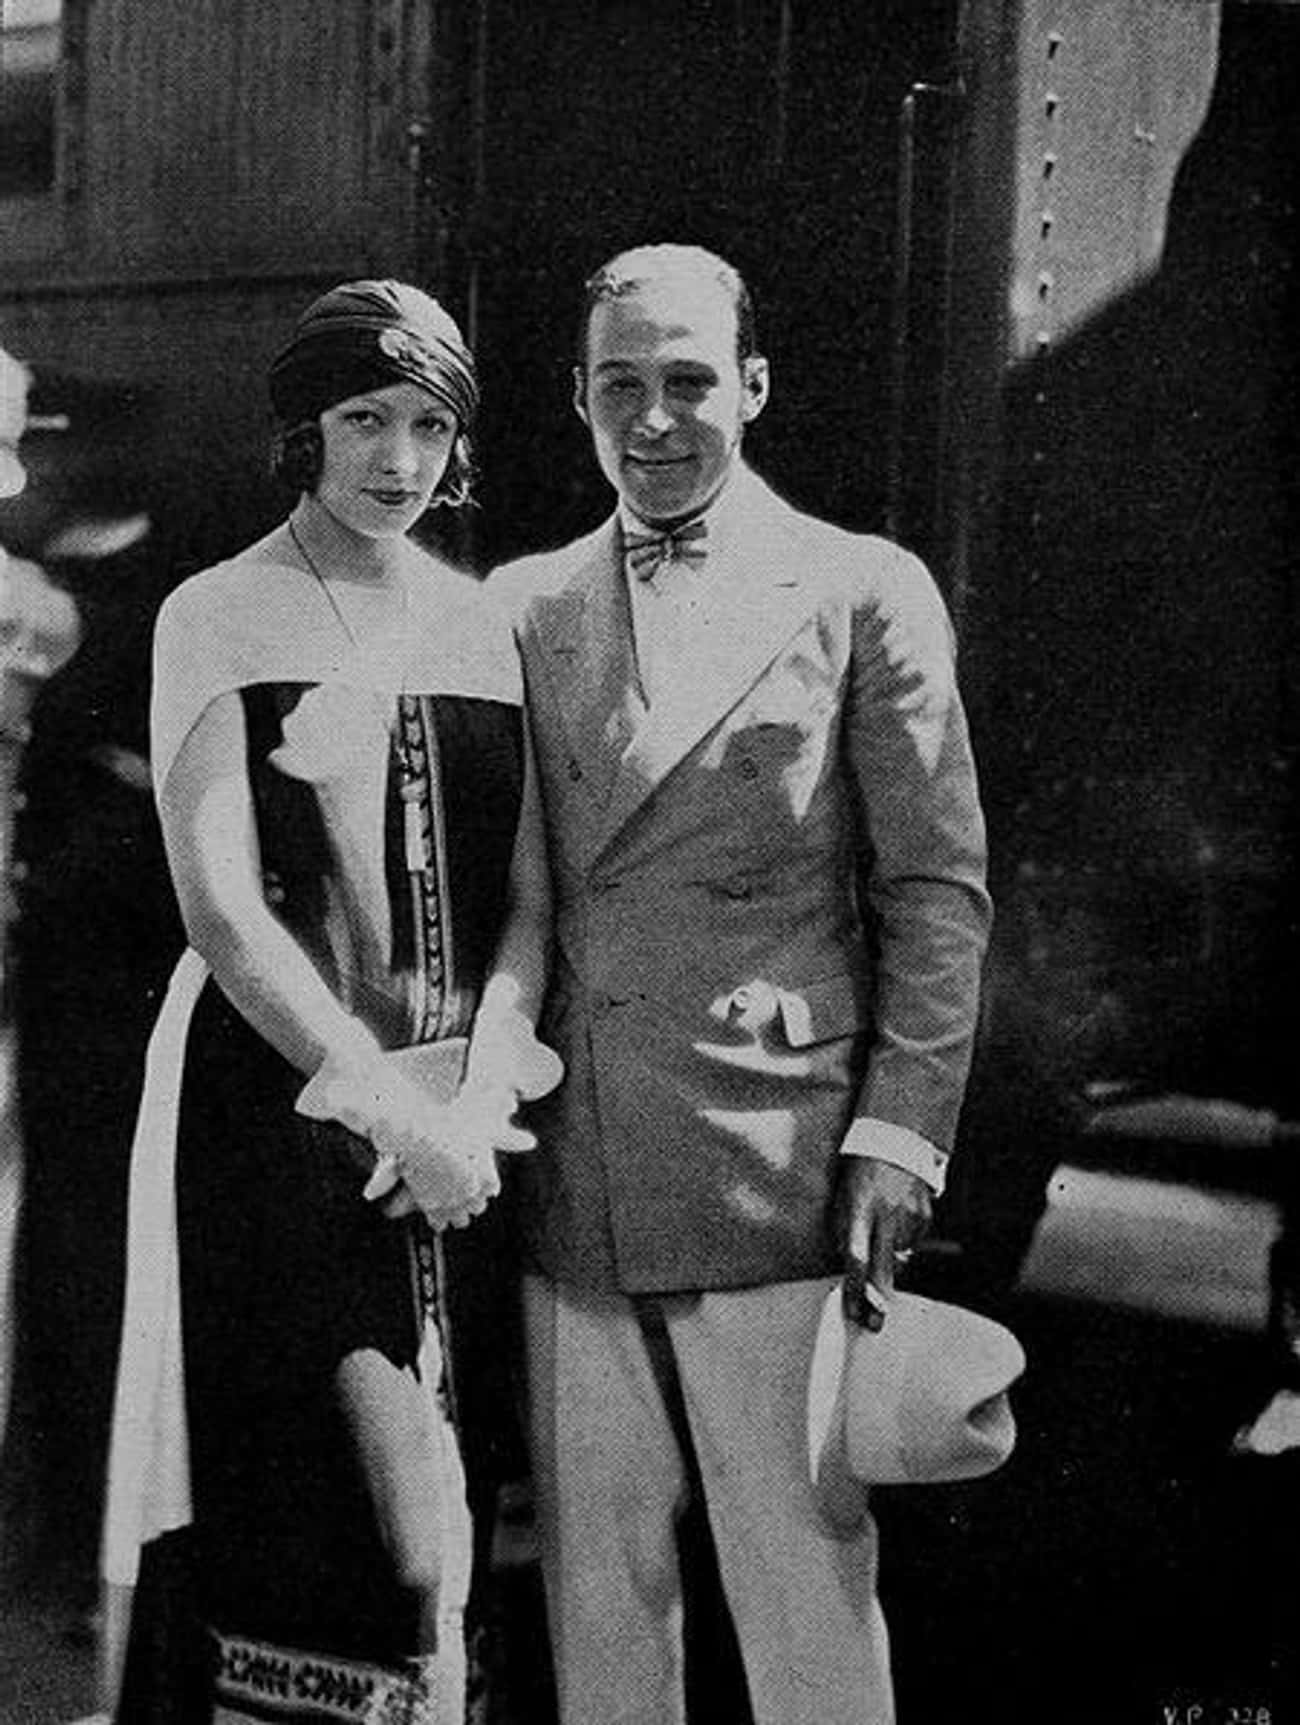 After A Scandalous Palm Springs Honeymoon, Rudolph Valentino Was Charged With Bigamy